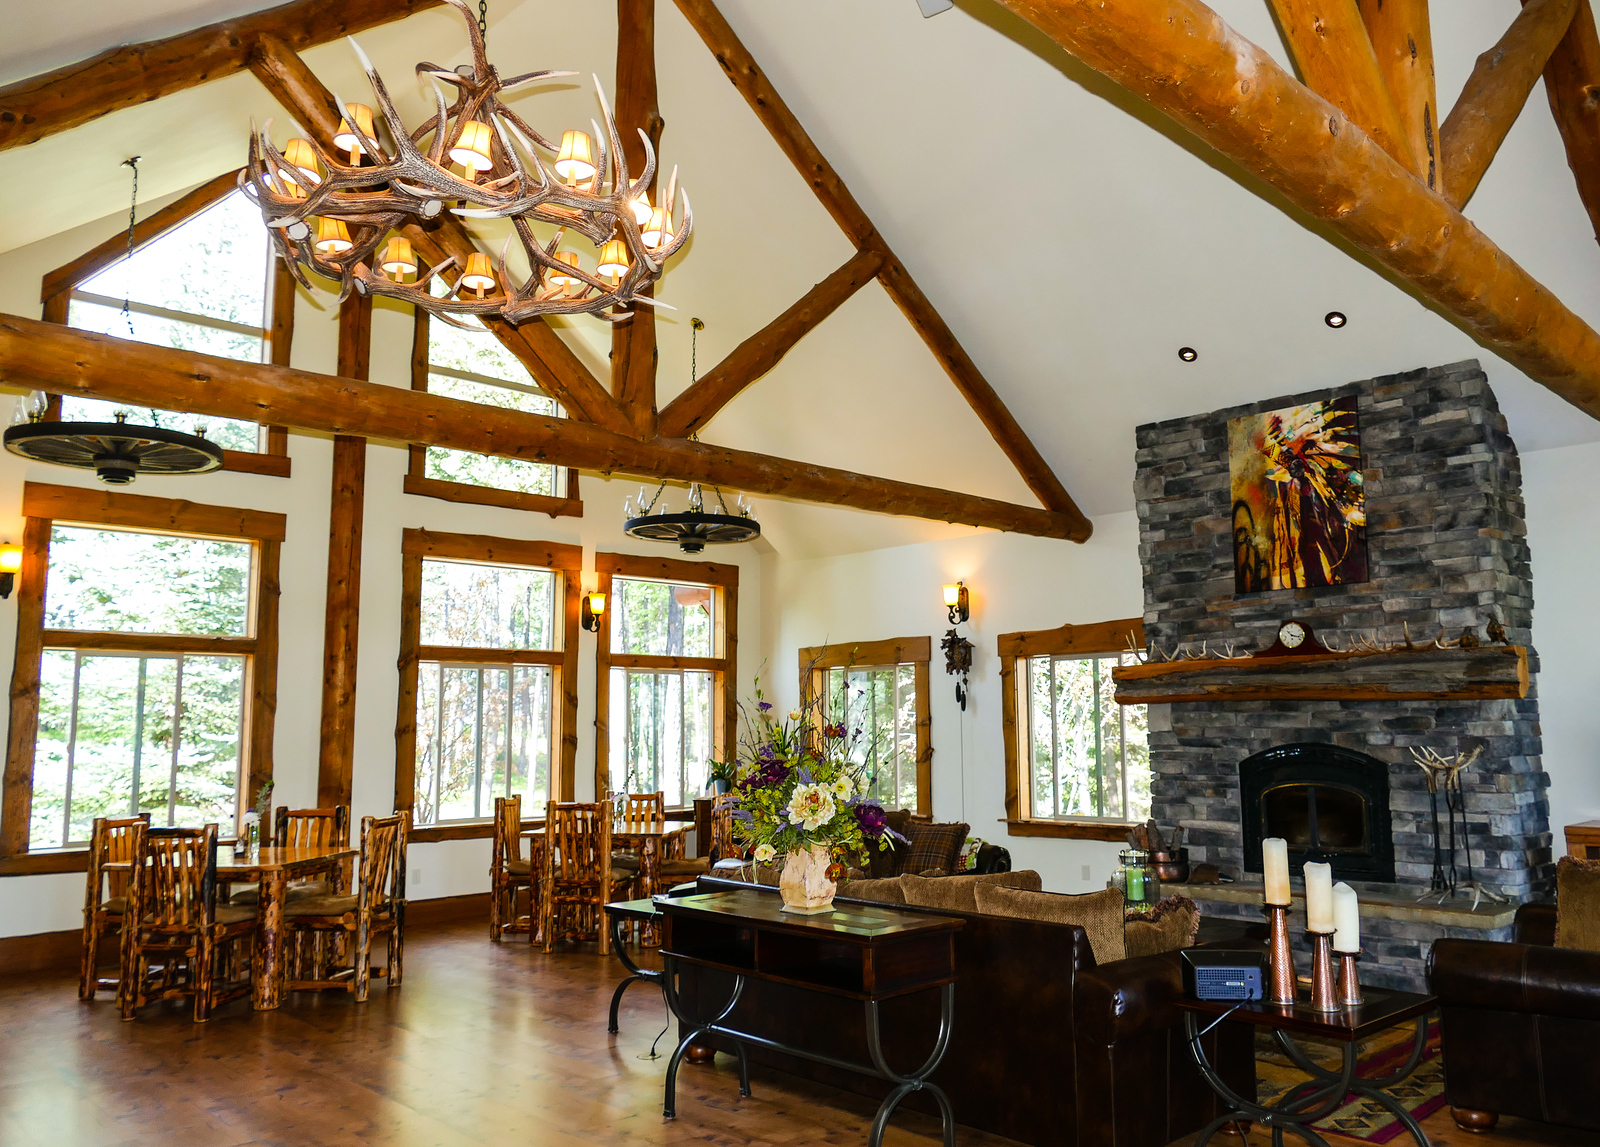 The great room at Dreamcatcher Lodge offers a rustic decor with plenty of seating. You'll find this luxurious lodge in Kalispell, Montana.